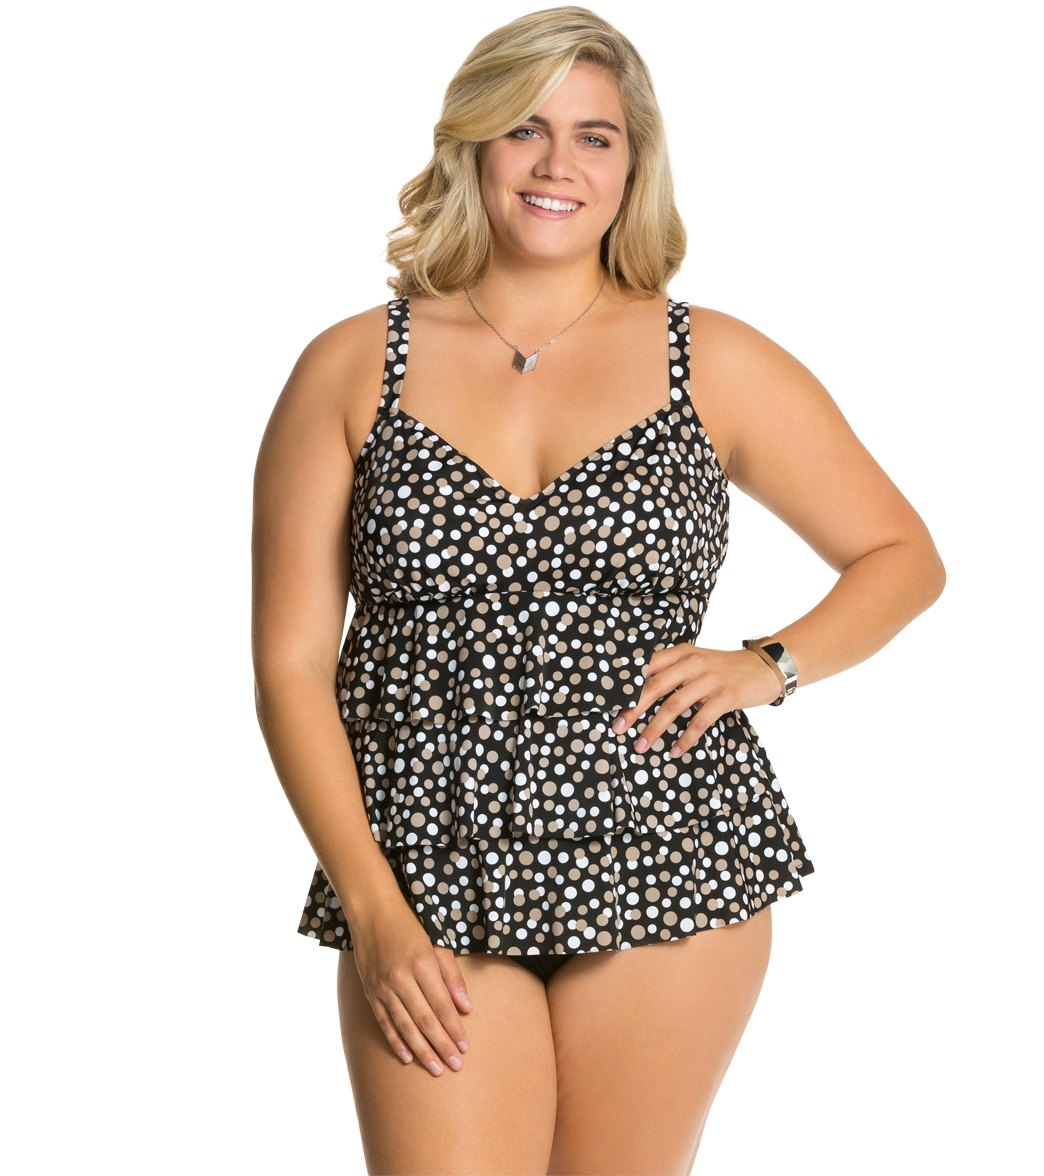 8e223c53976df ... Plus Size Dots At Play Triple Tier Fauxkini One Piece Swimsuit Play  Video. MODEL MEASUREMENTS